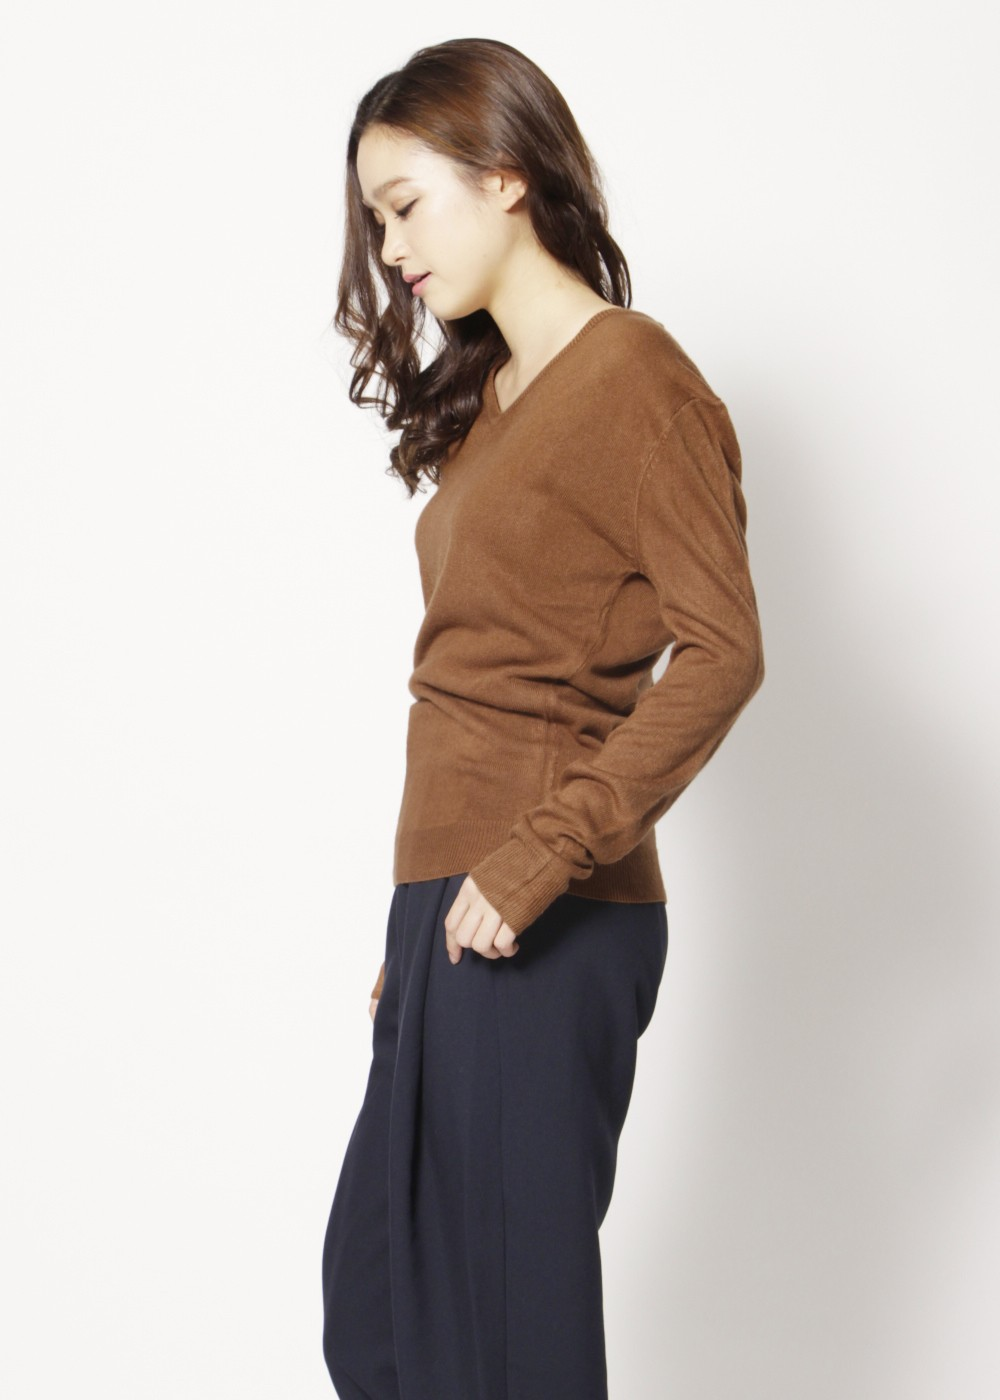 Vネックニット|CML|ニット・セーター|URBAN RESEARCH warehouse Tops&Outer|最大80%OFF